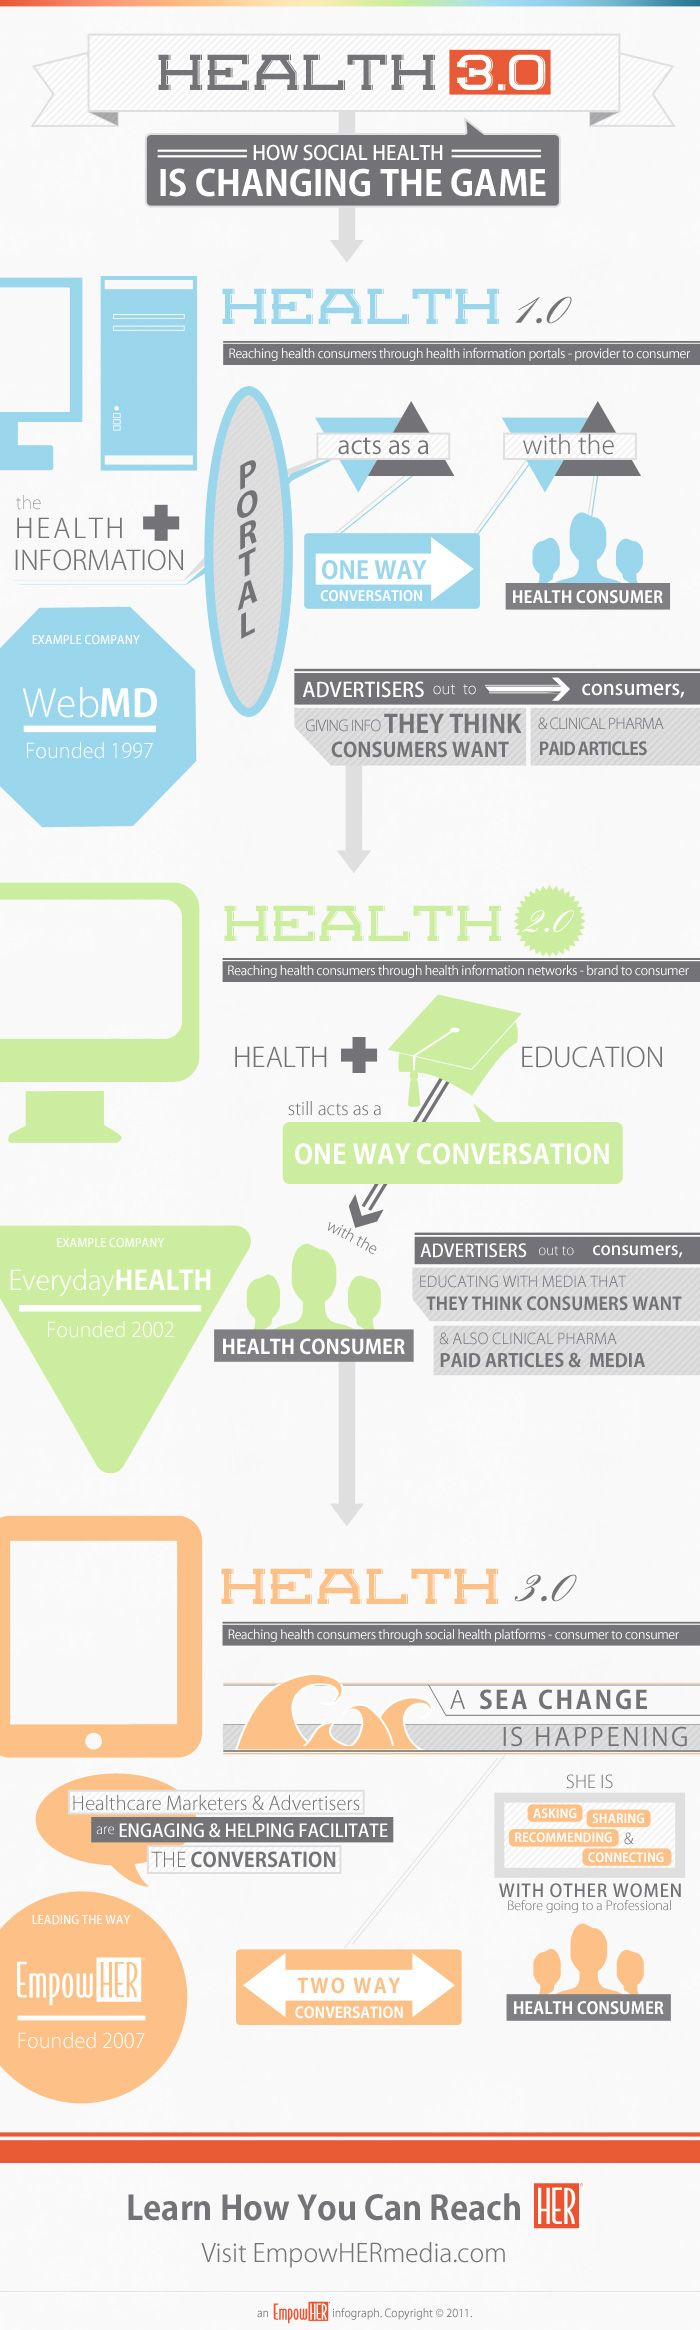 #Health 3.0 Is Changing the Game #hcsm